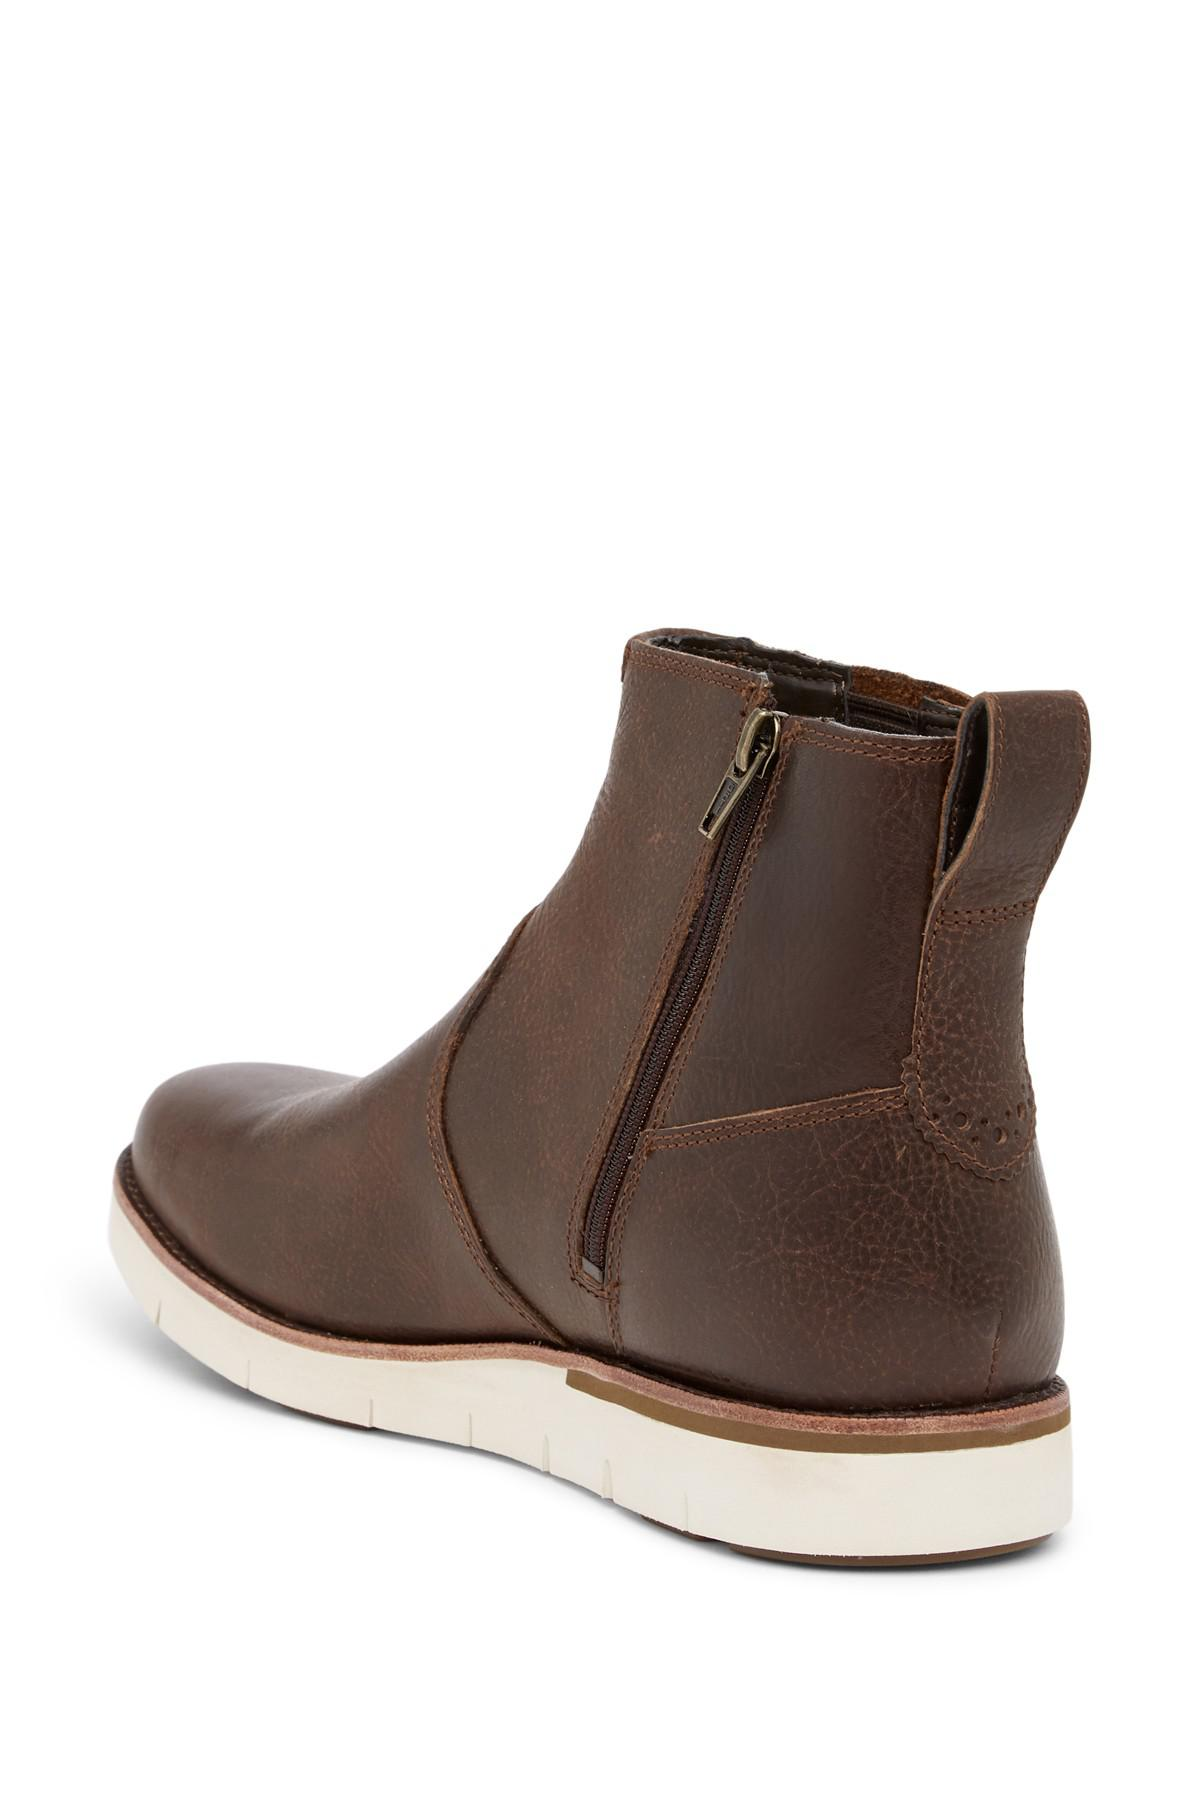 Flotar Imperio Pogo stick jump  Timberland Leather Preston Hills Chelsea Boot in Brown for Men - Lyst